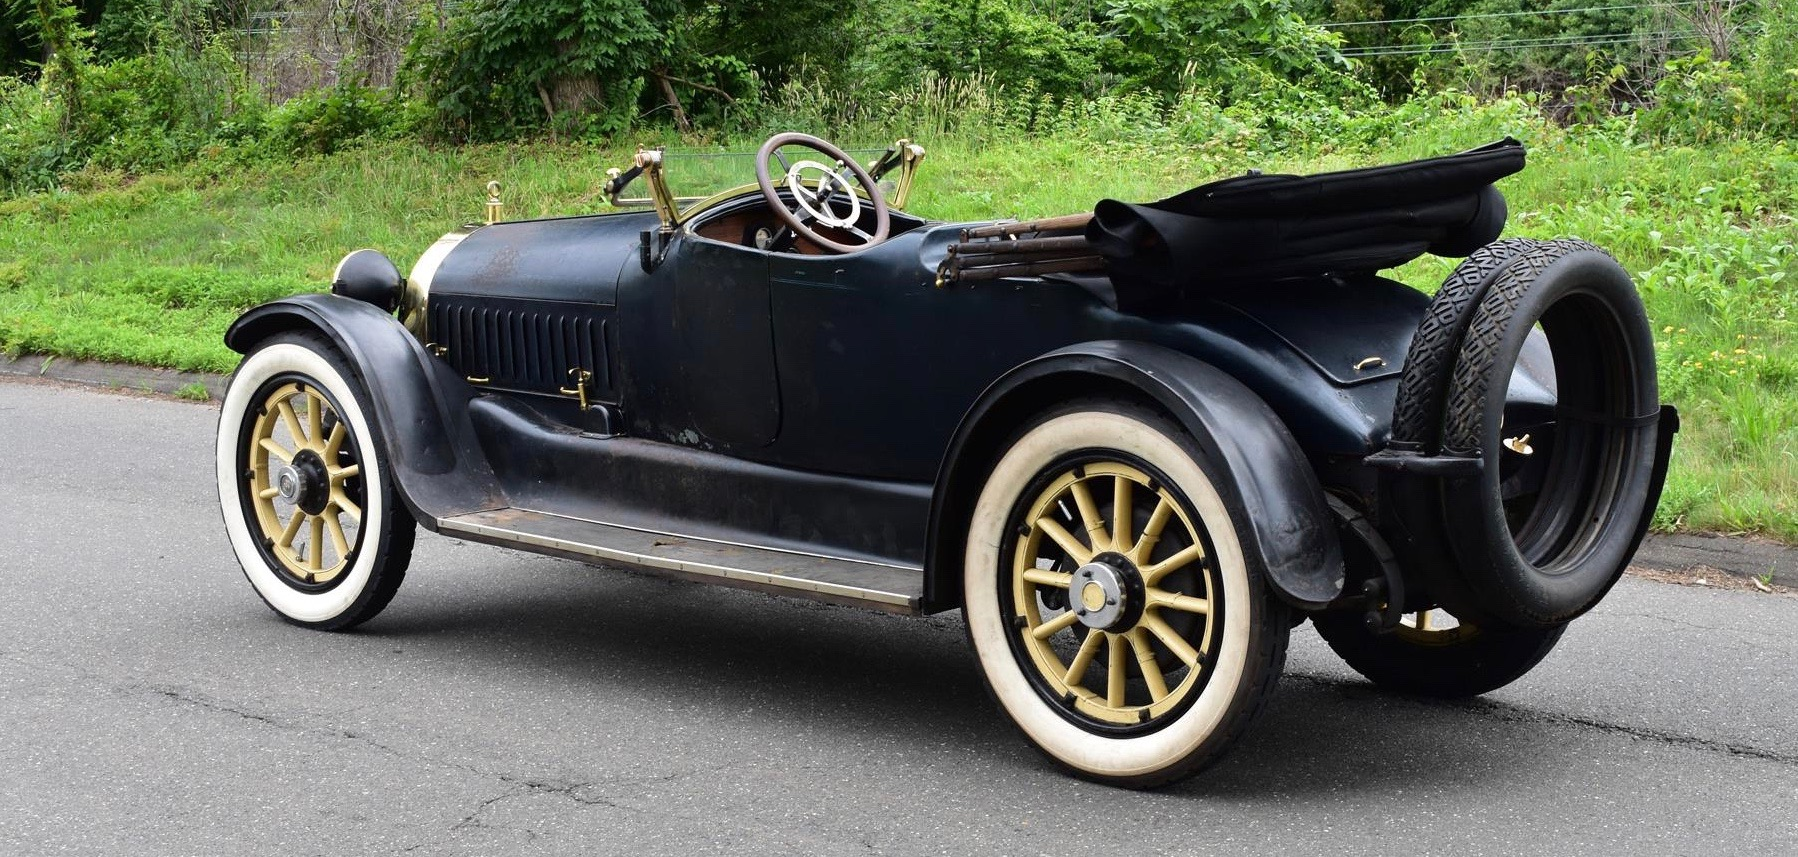 1915 Marmon, Marmon introduced its Model 41 after winning inaugural Indy 500, ClassicCars.com Journal